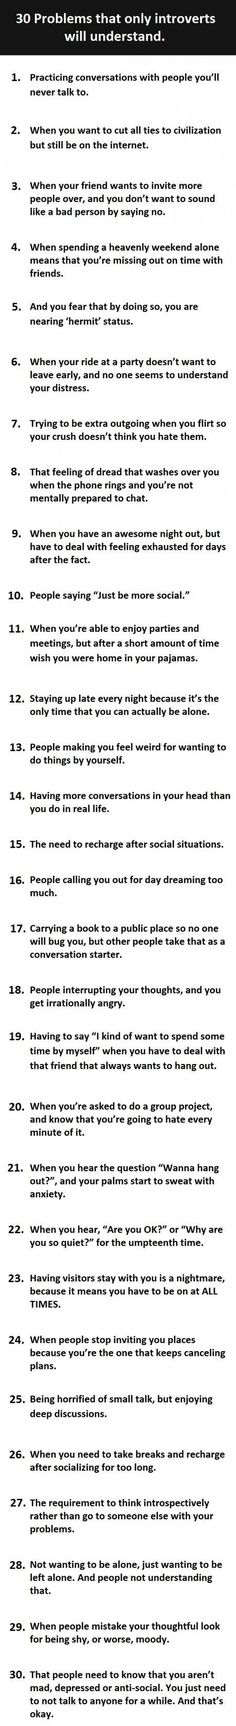 30-problems-that-only-introverts-will-understand